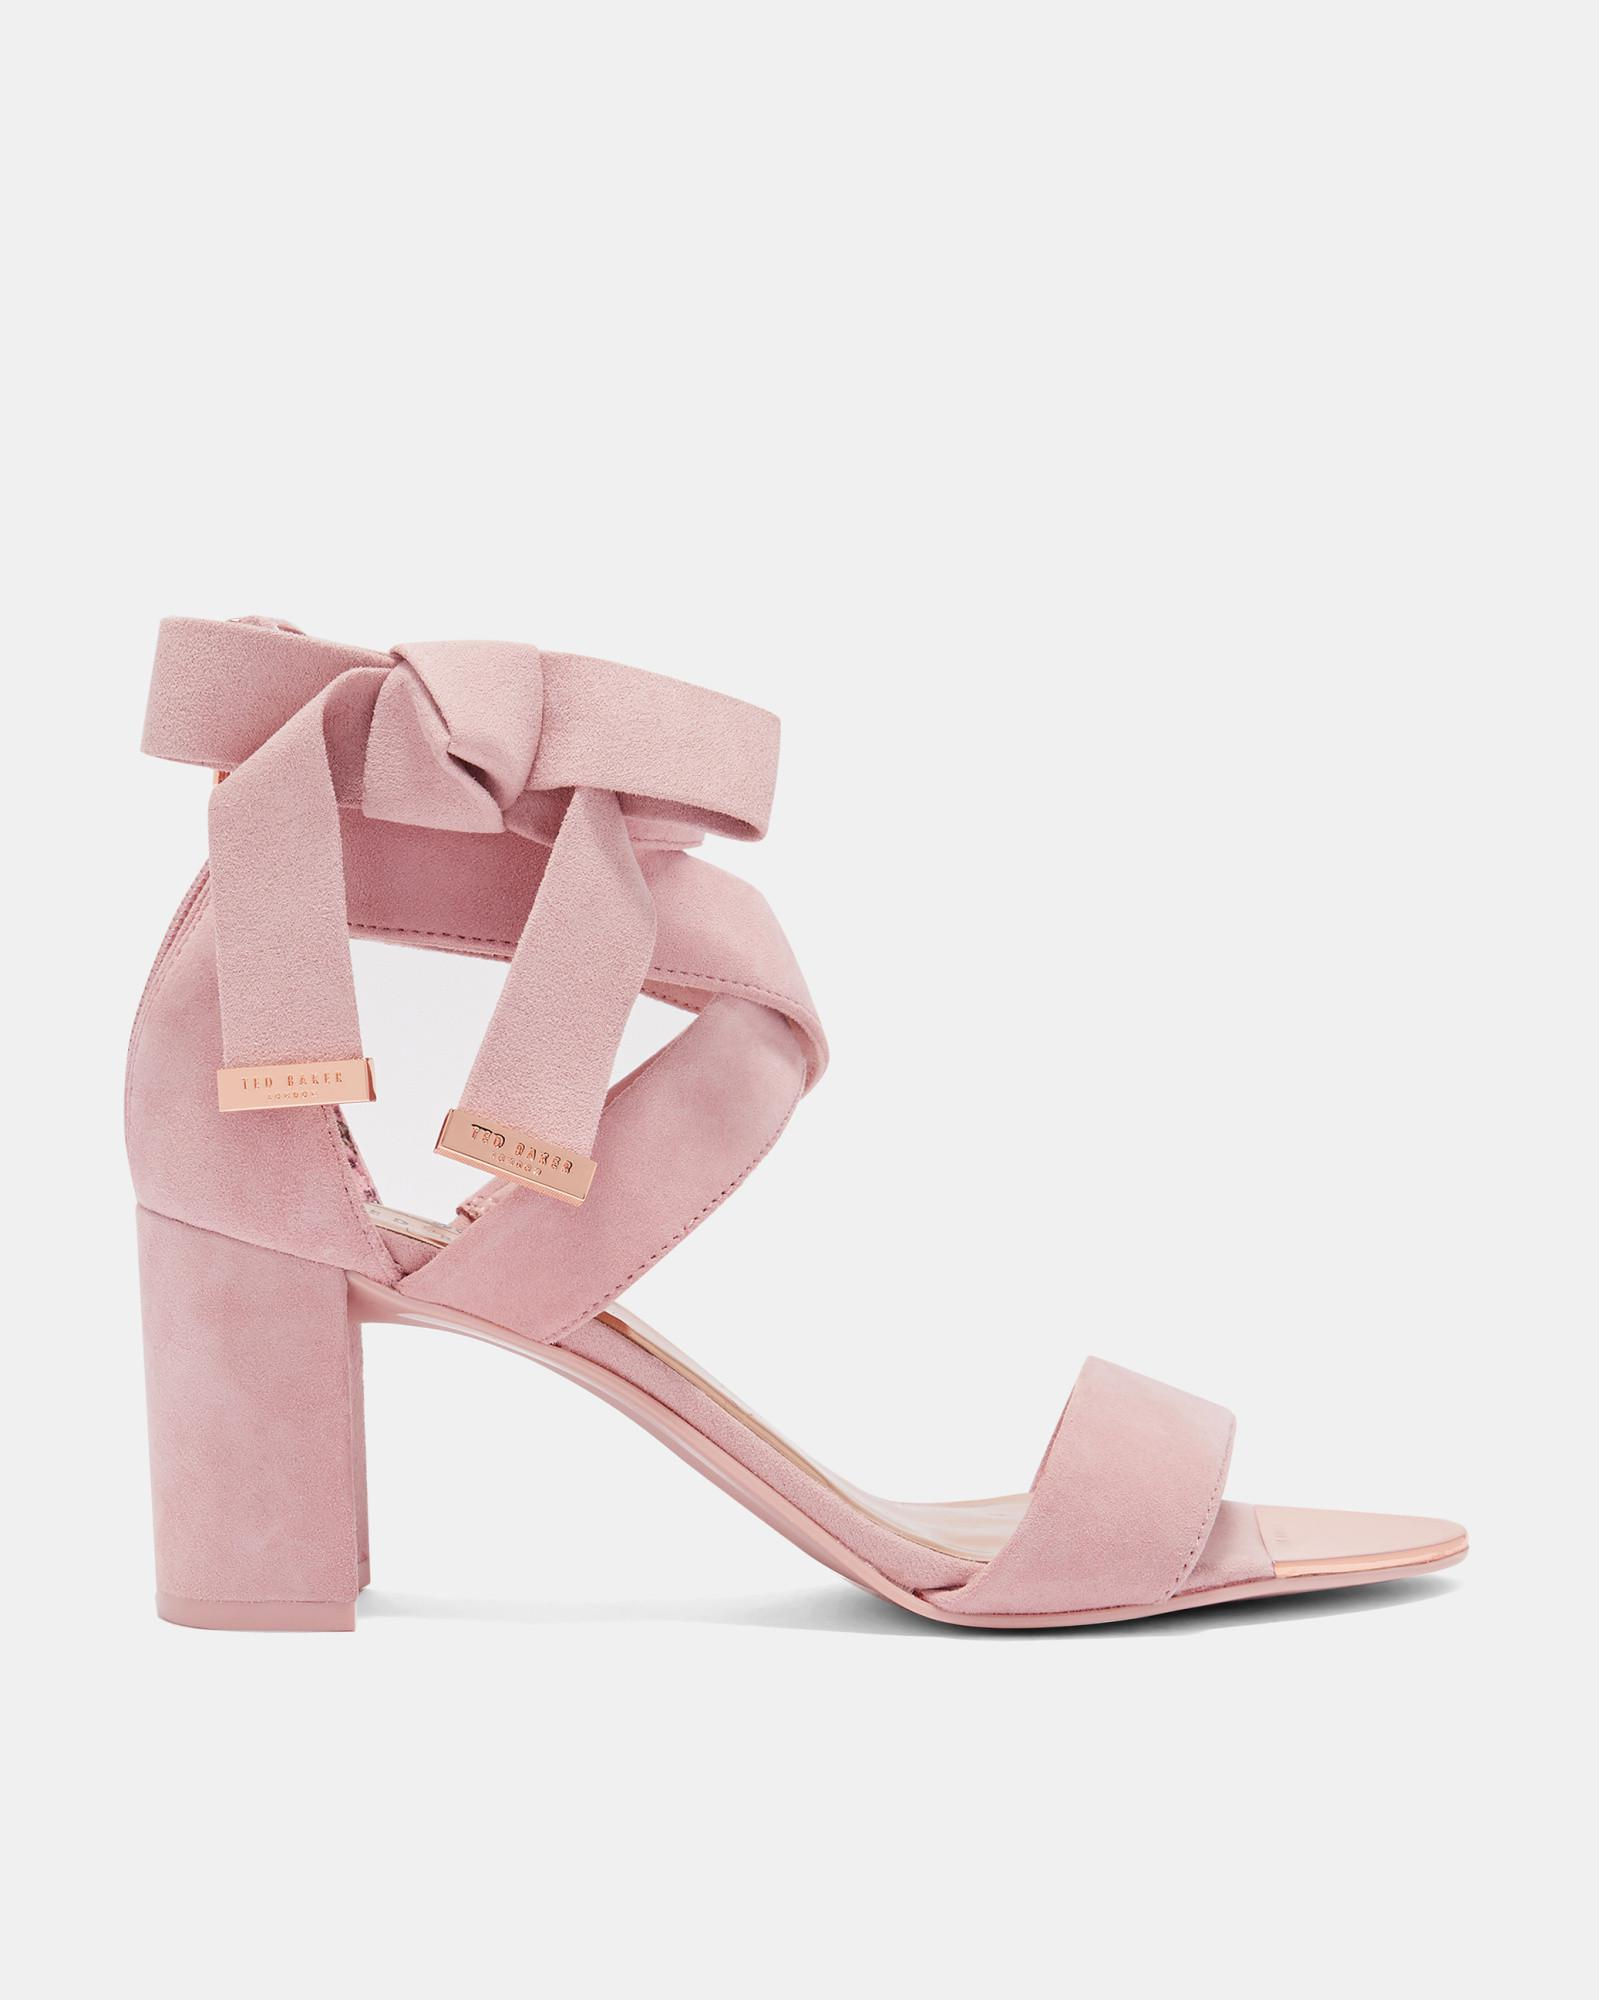 3d2cdd8e10c56 Ted Baker Suede Bow Detail Strappy Sandals in Pink - Lyst